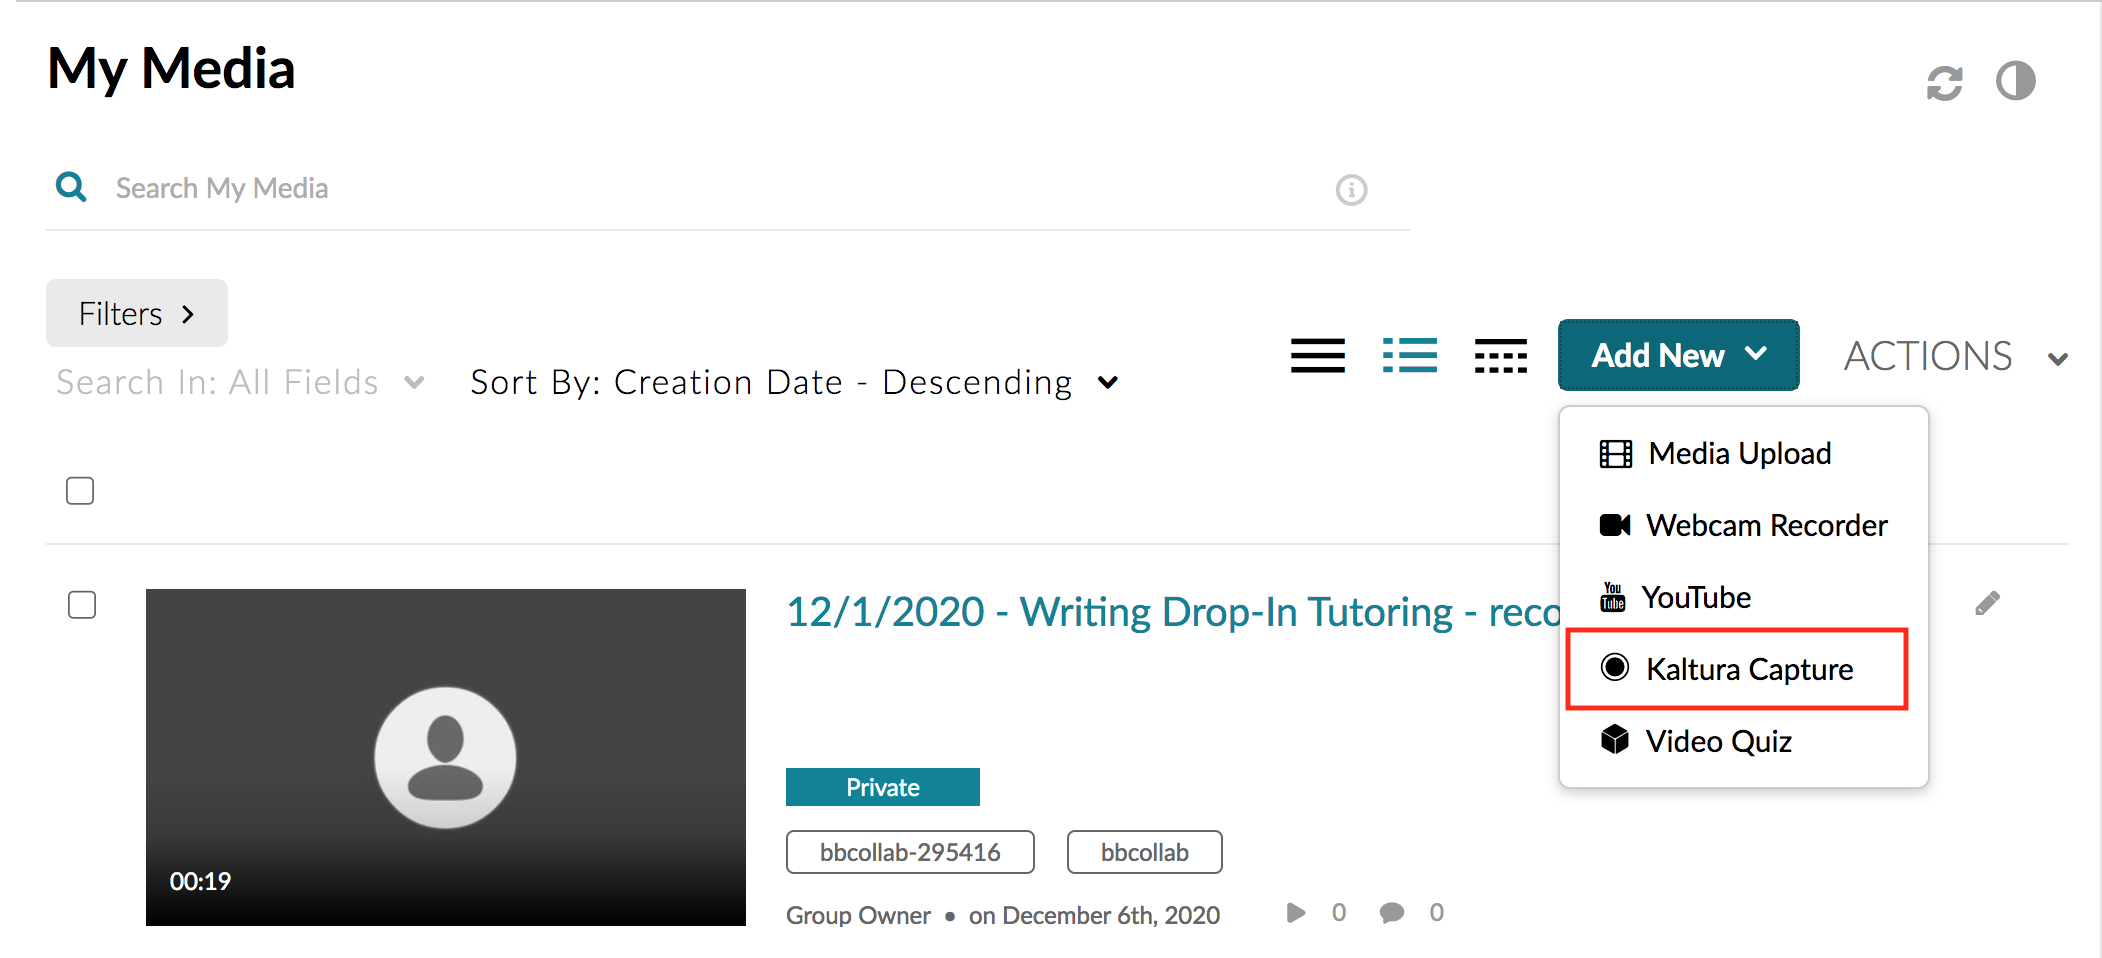 From the My Media page, click on the blue Add New button and launch the Kaltura Capture option.